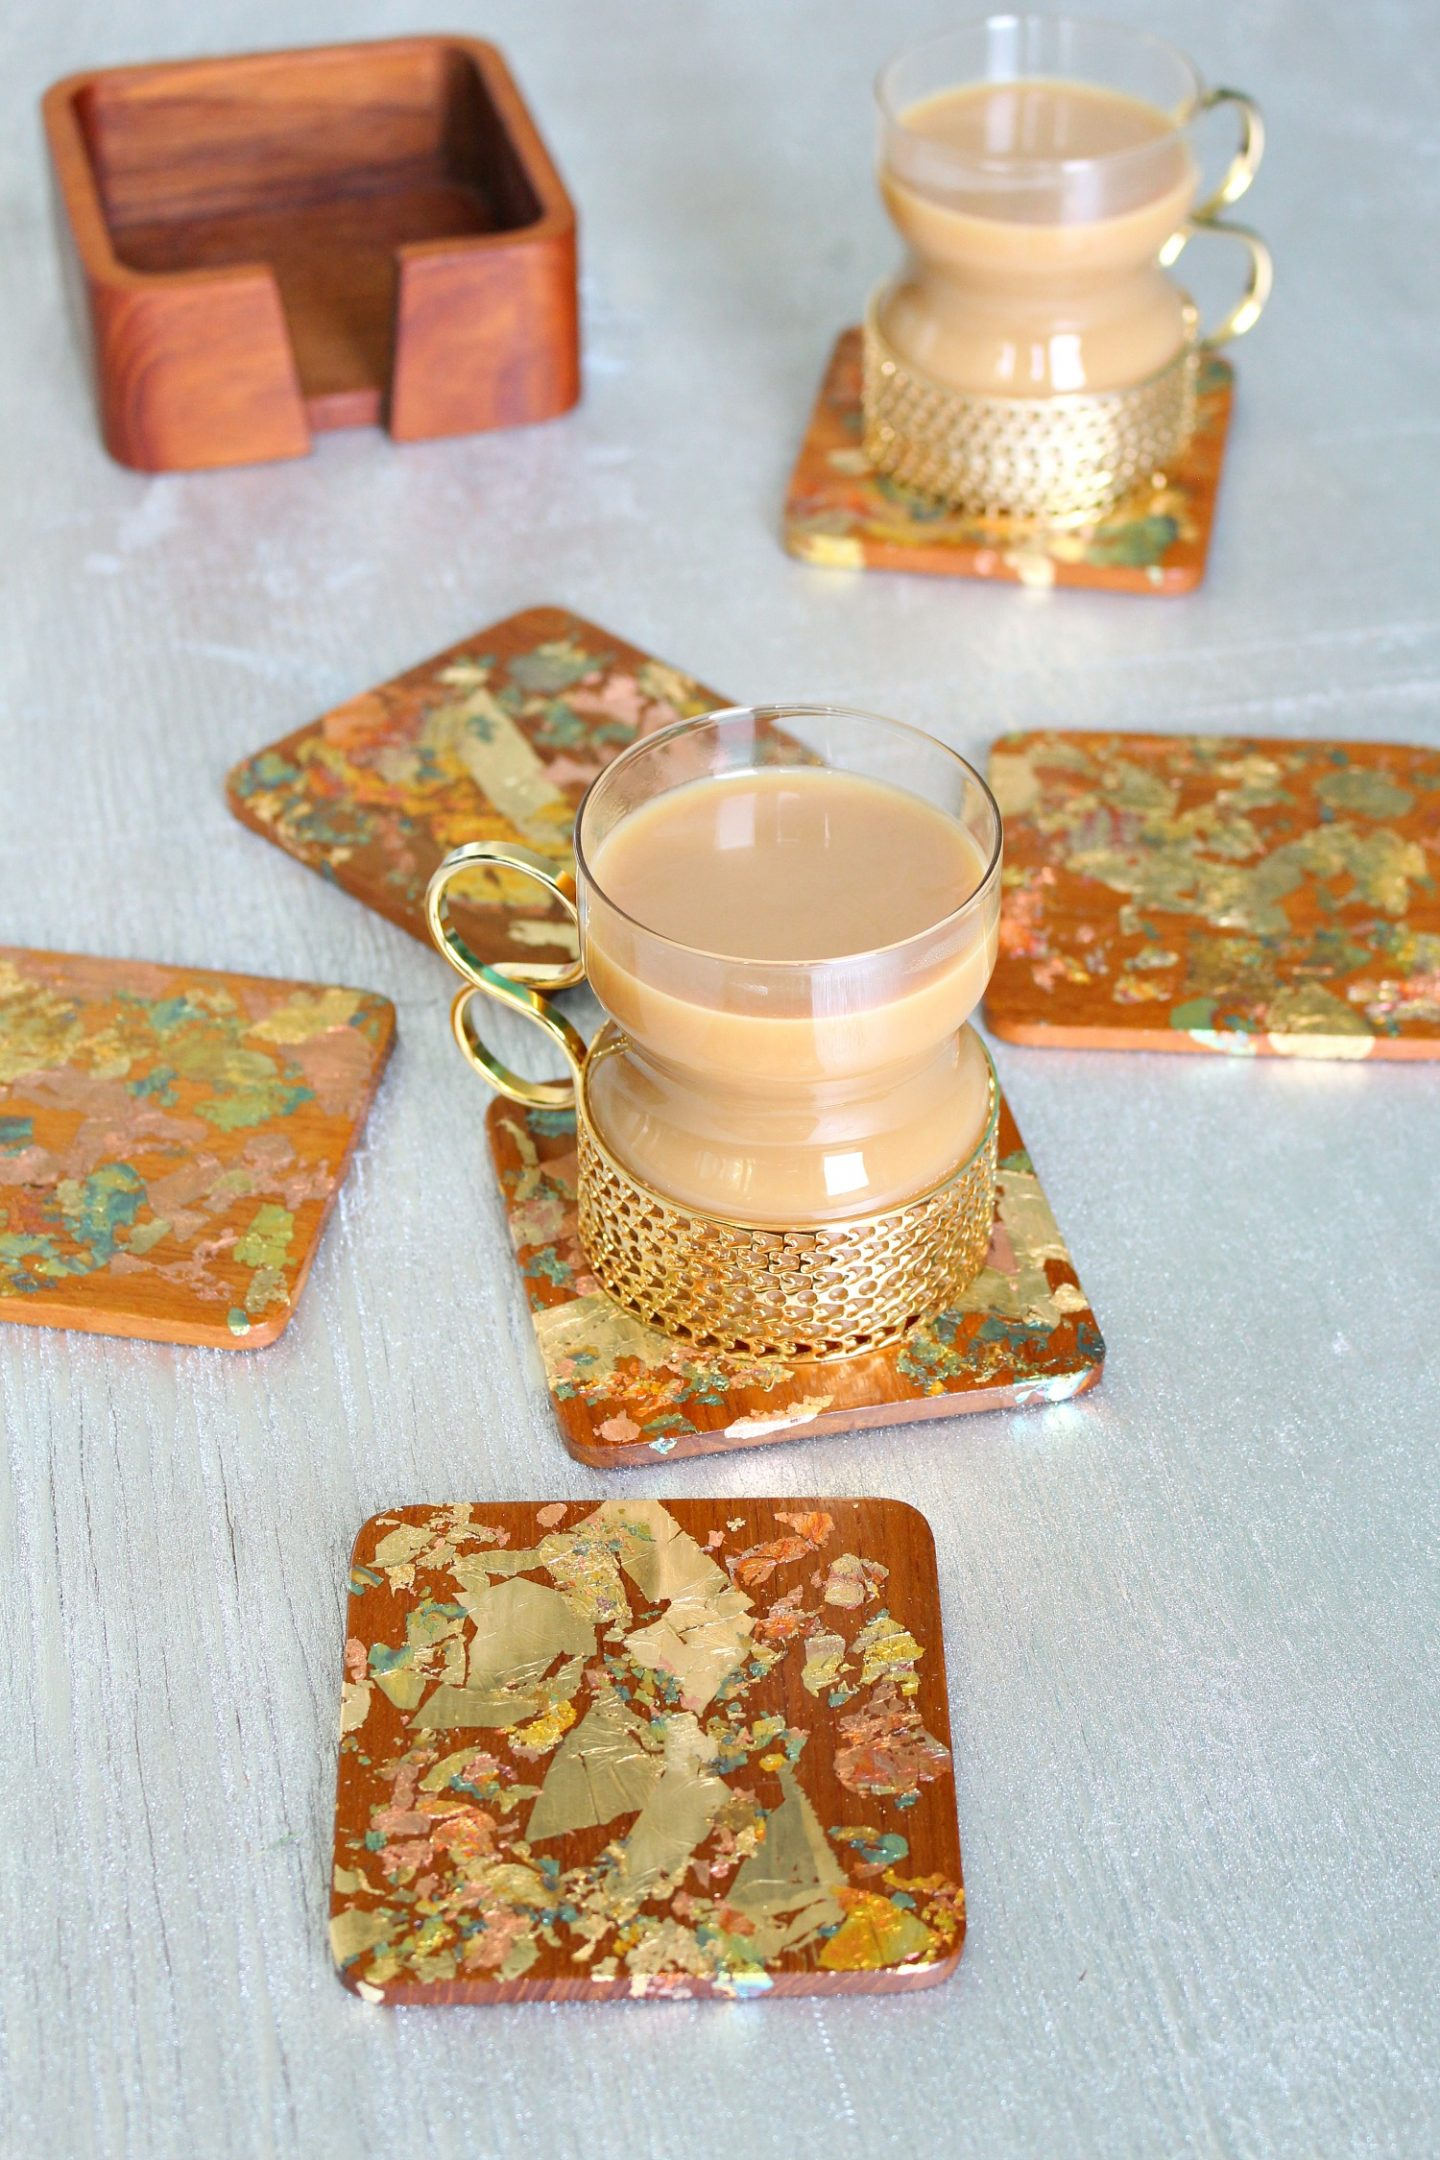 DIY Gold Leaf Coaster Project